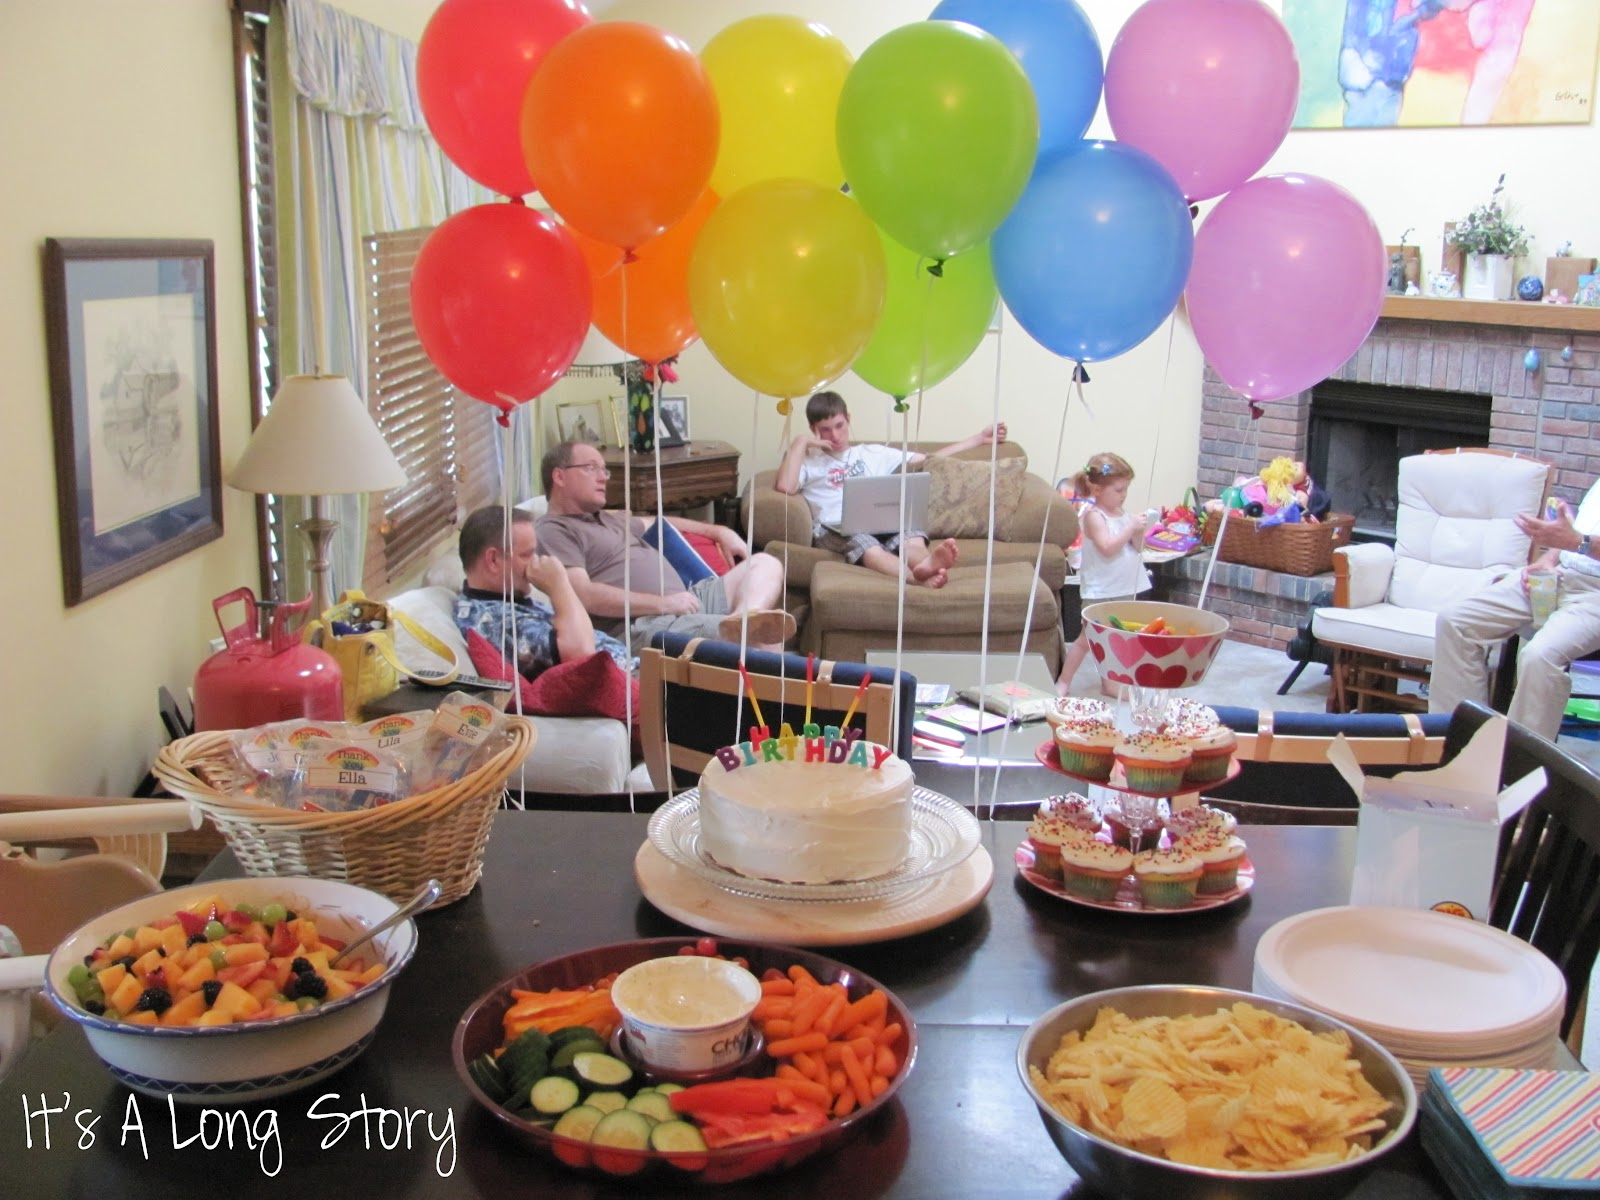 It's a Long Story: Rainbow Birthday Party